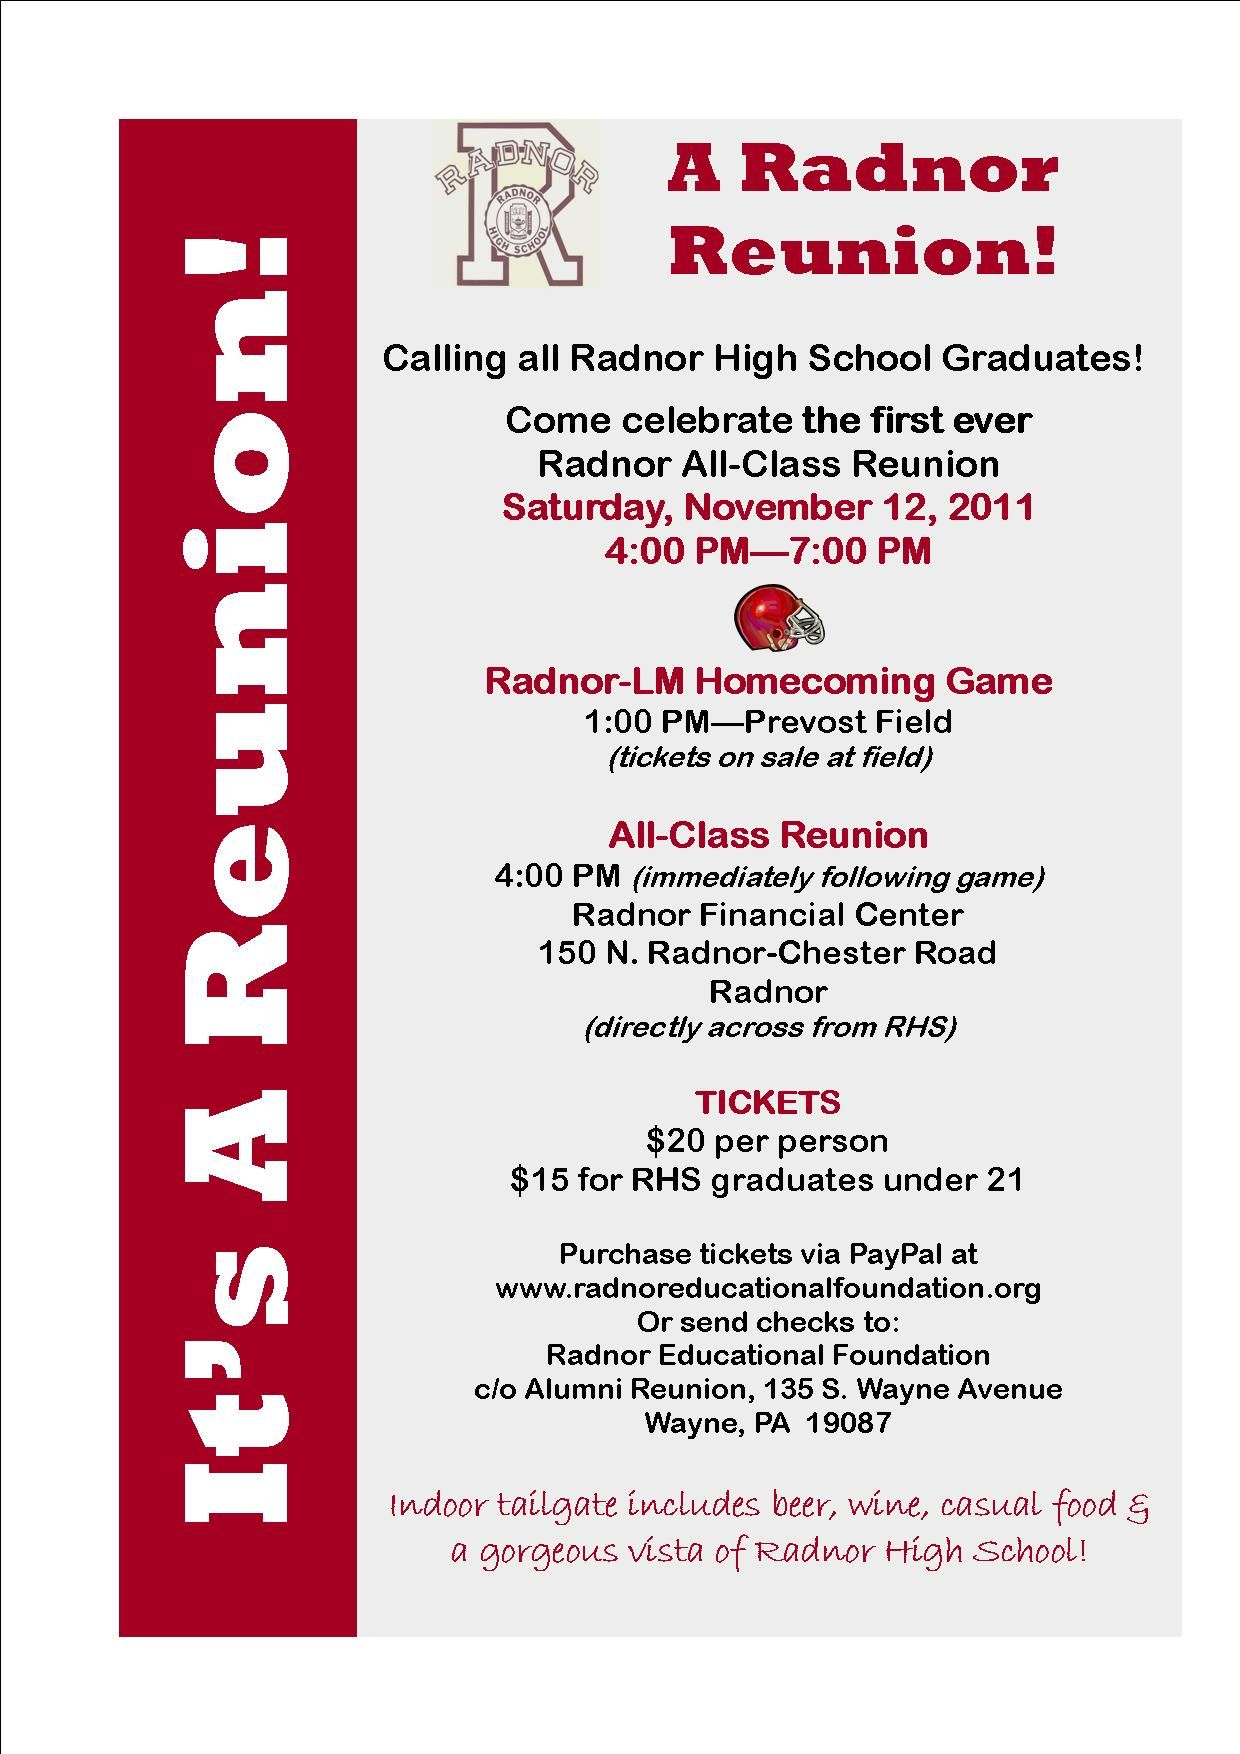 Class reunion invitations invitations pinterest class class reunion invitations family reunionshigh school stopboris